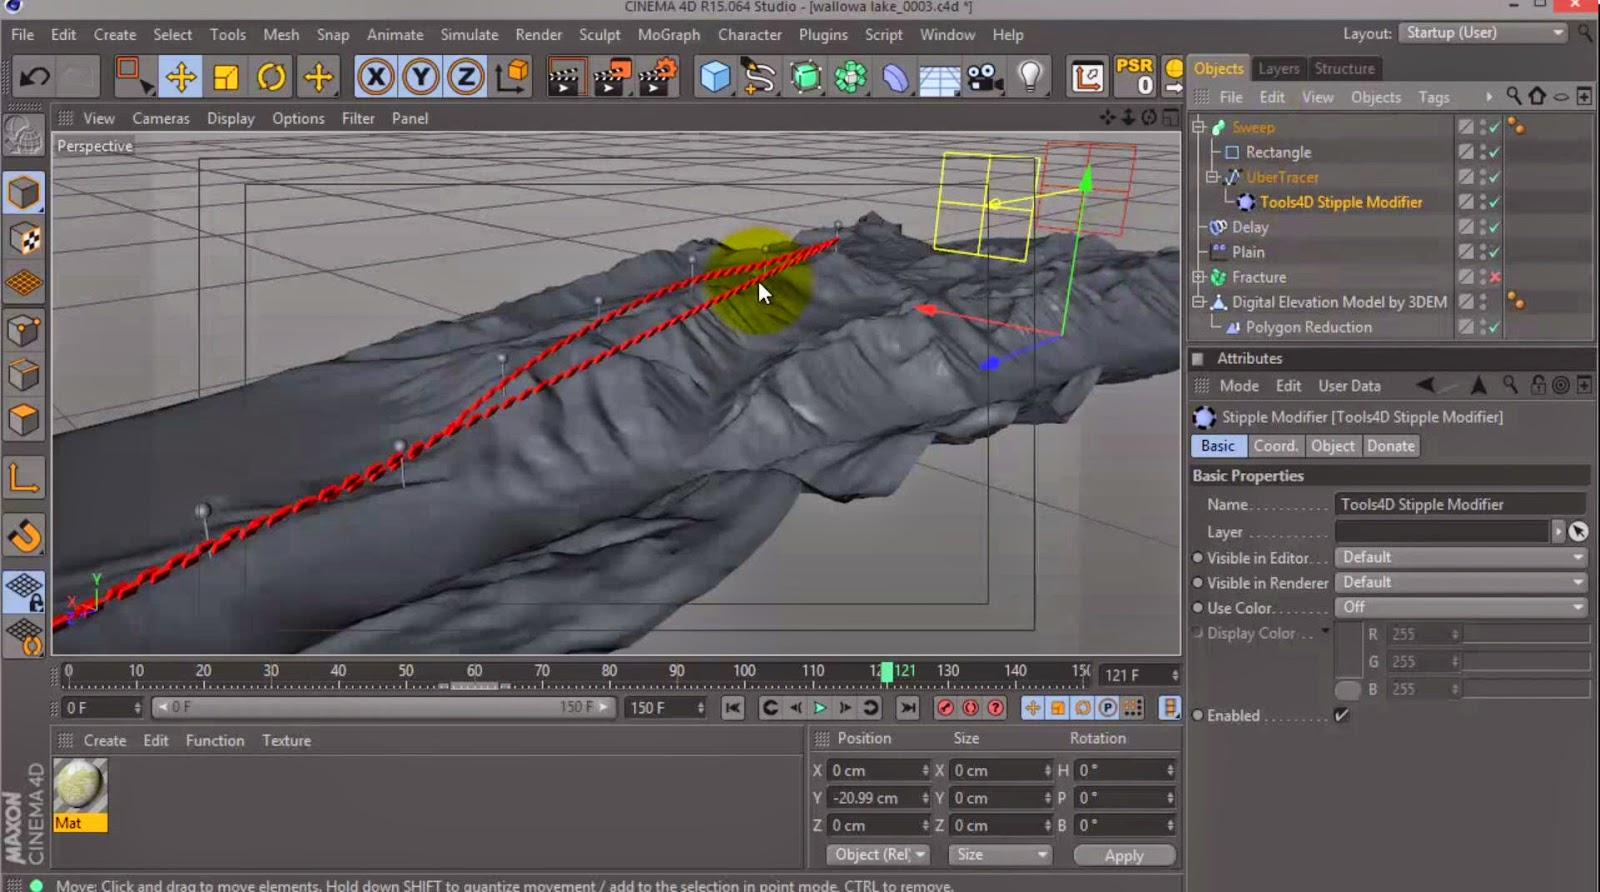 Character Design Cinema 4d Tutorial : Mapping dem data in cinema d tutorial cg tutorial